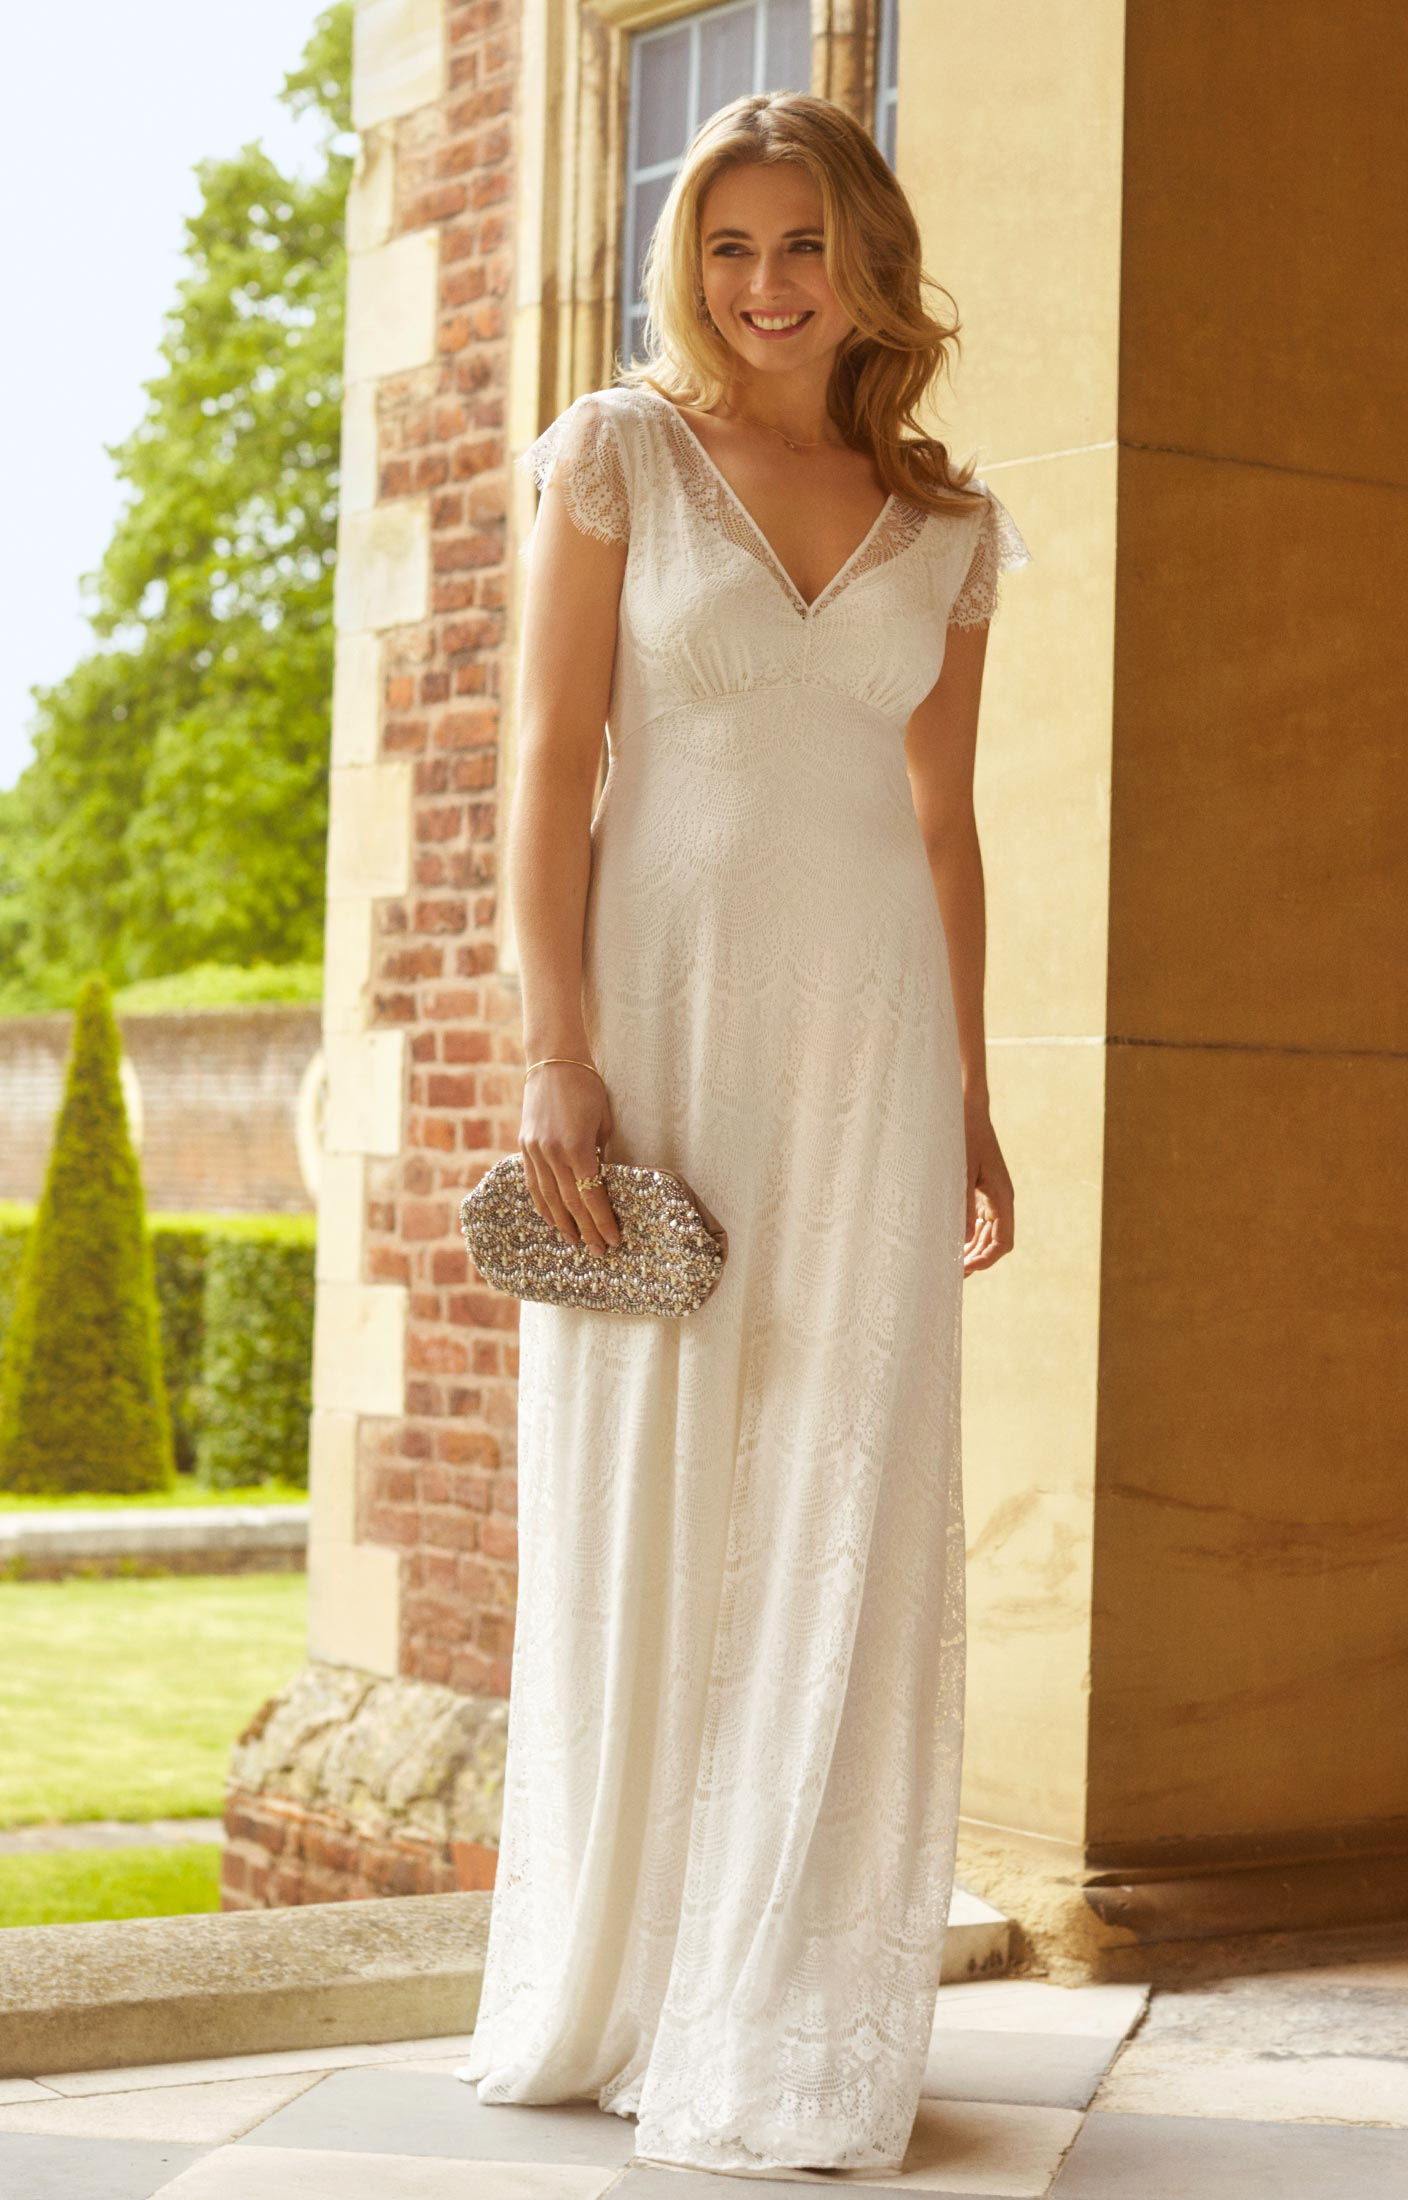 Isobel Wedding Gown Ivory - Wedding Dresses, Evening Wear and Party ...